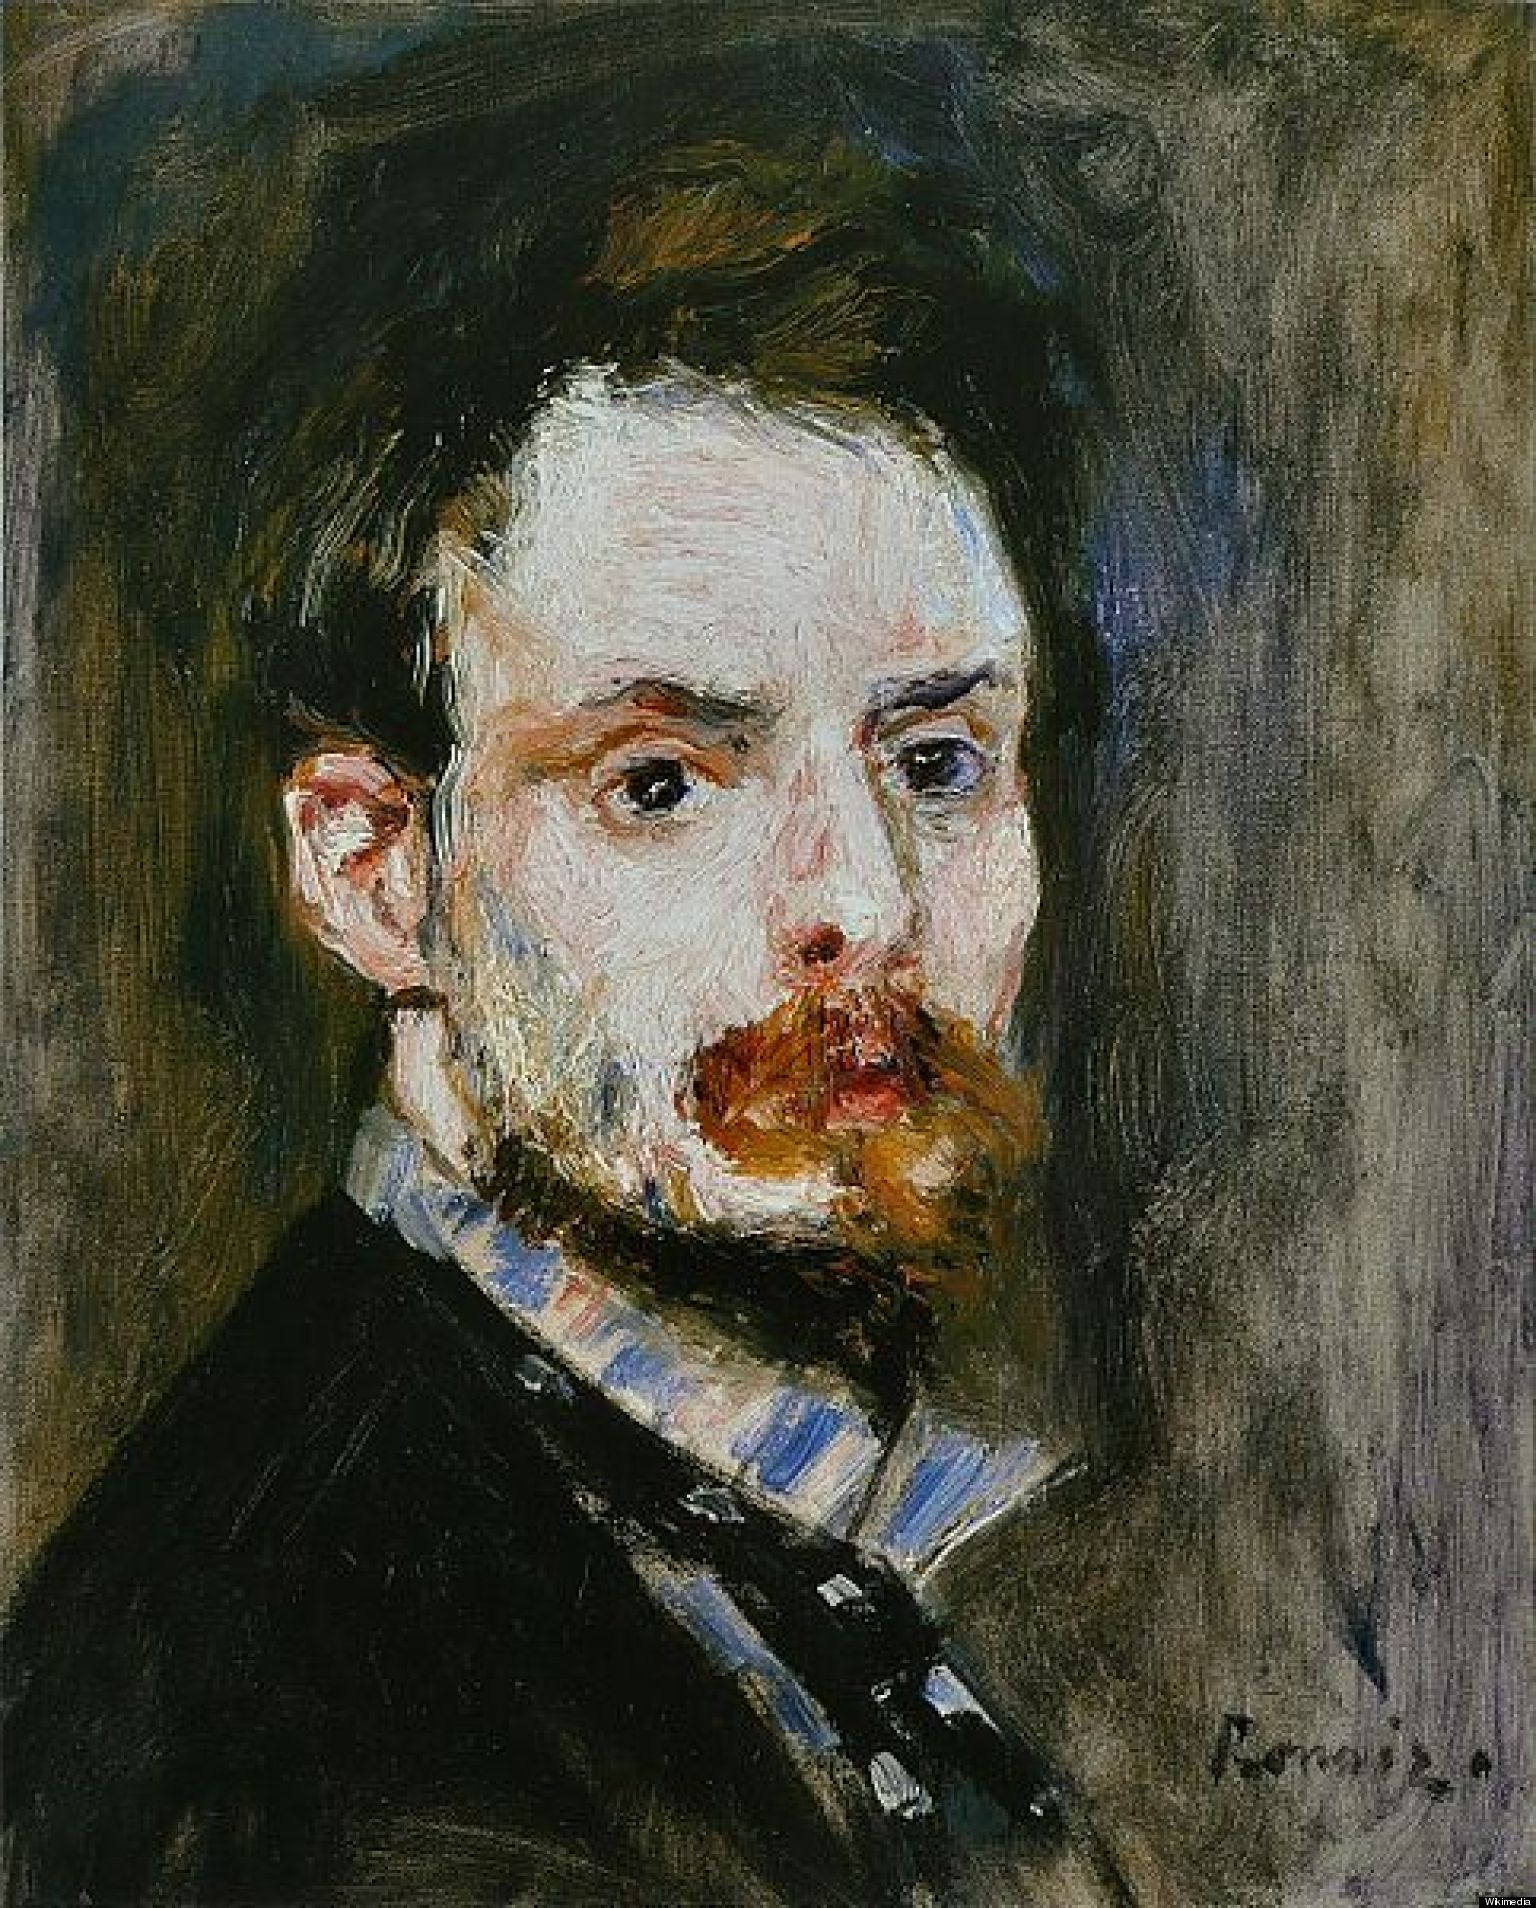 Pierre-Auguste Renoire - 1841-1919Considered to be the leader of the Impressionists